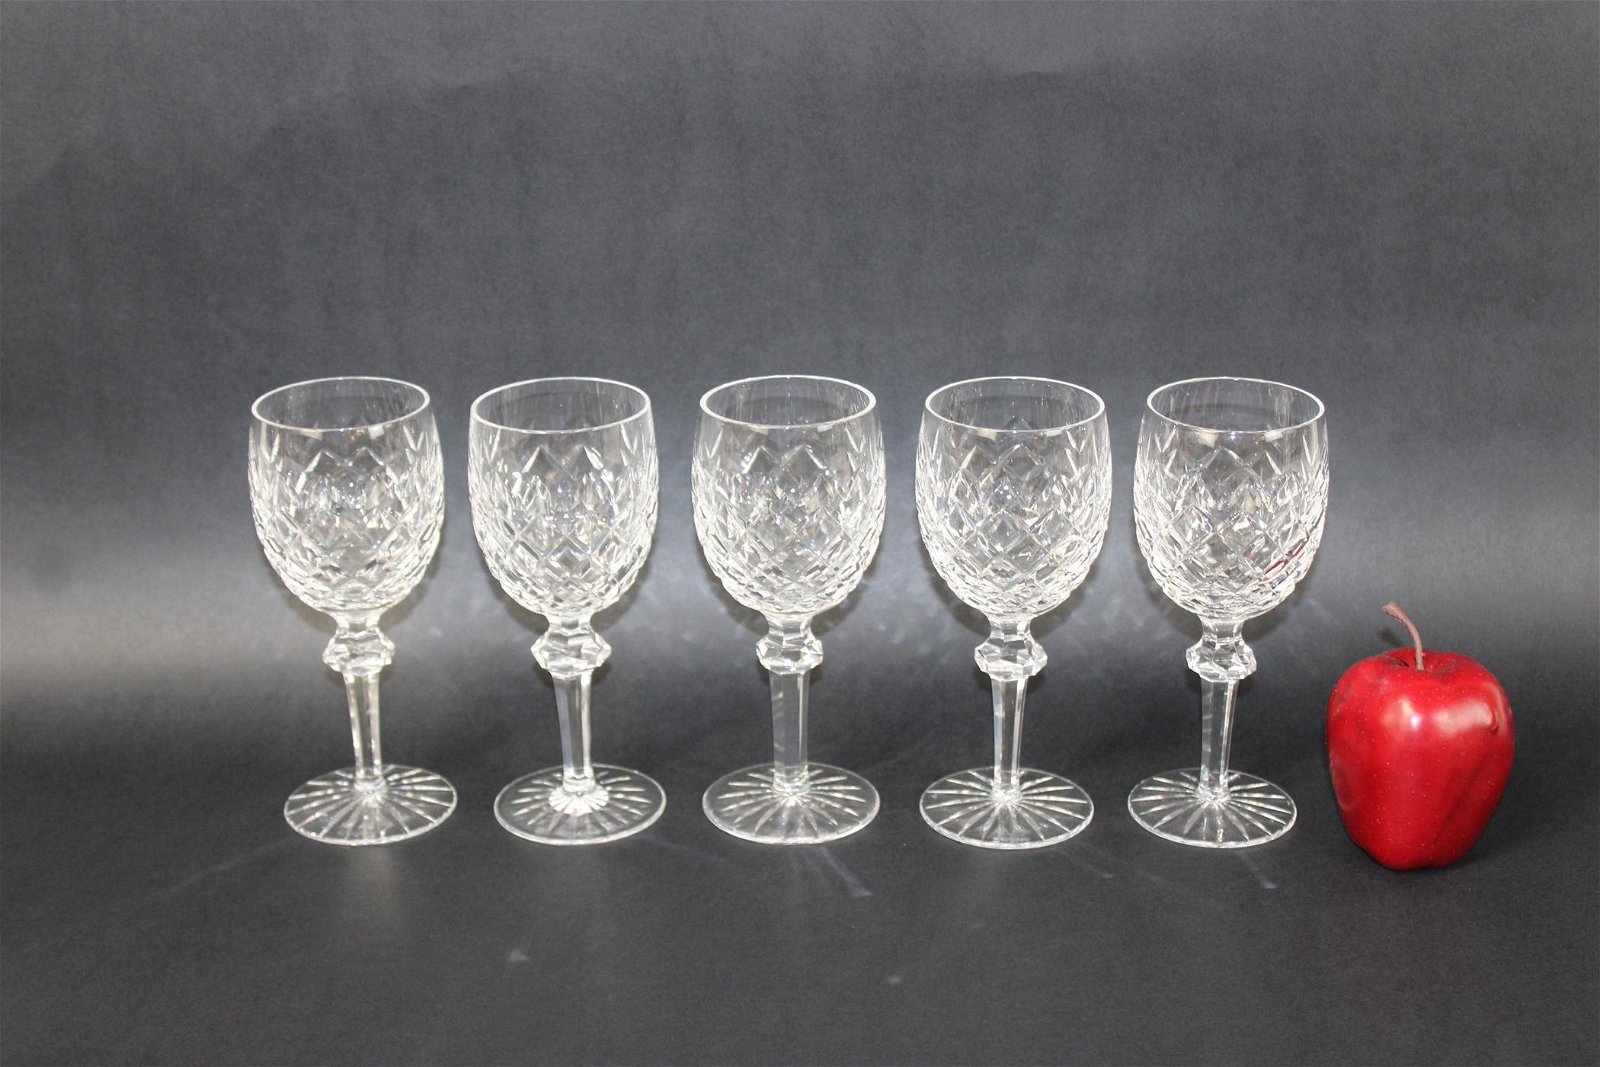 Set of 5 Waterford crystal wine goblets